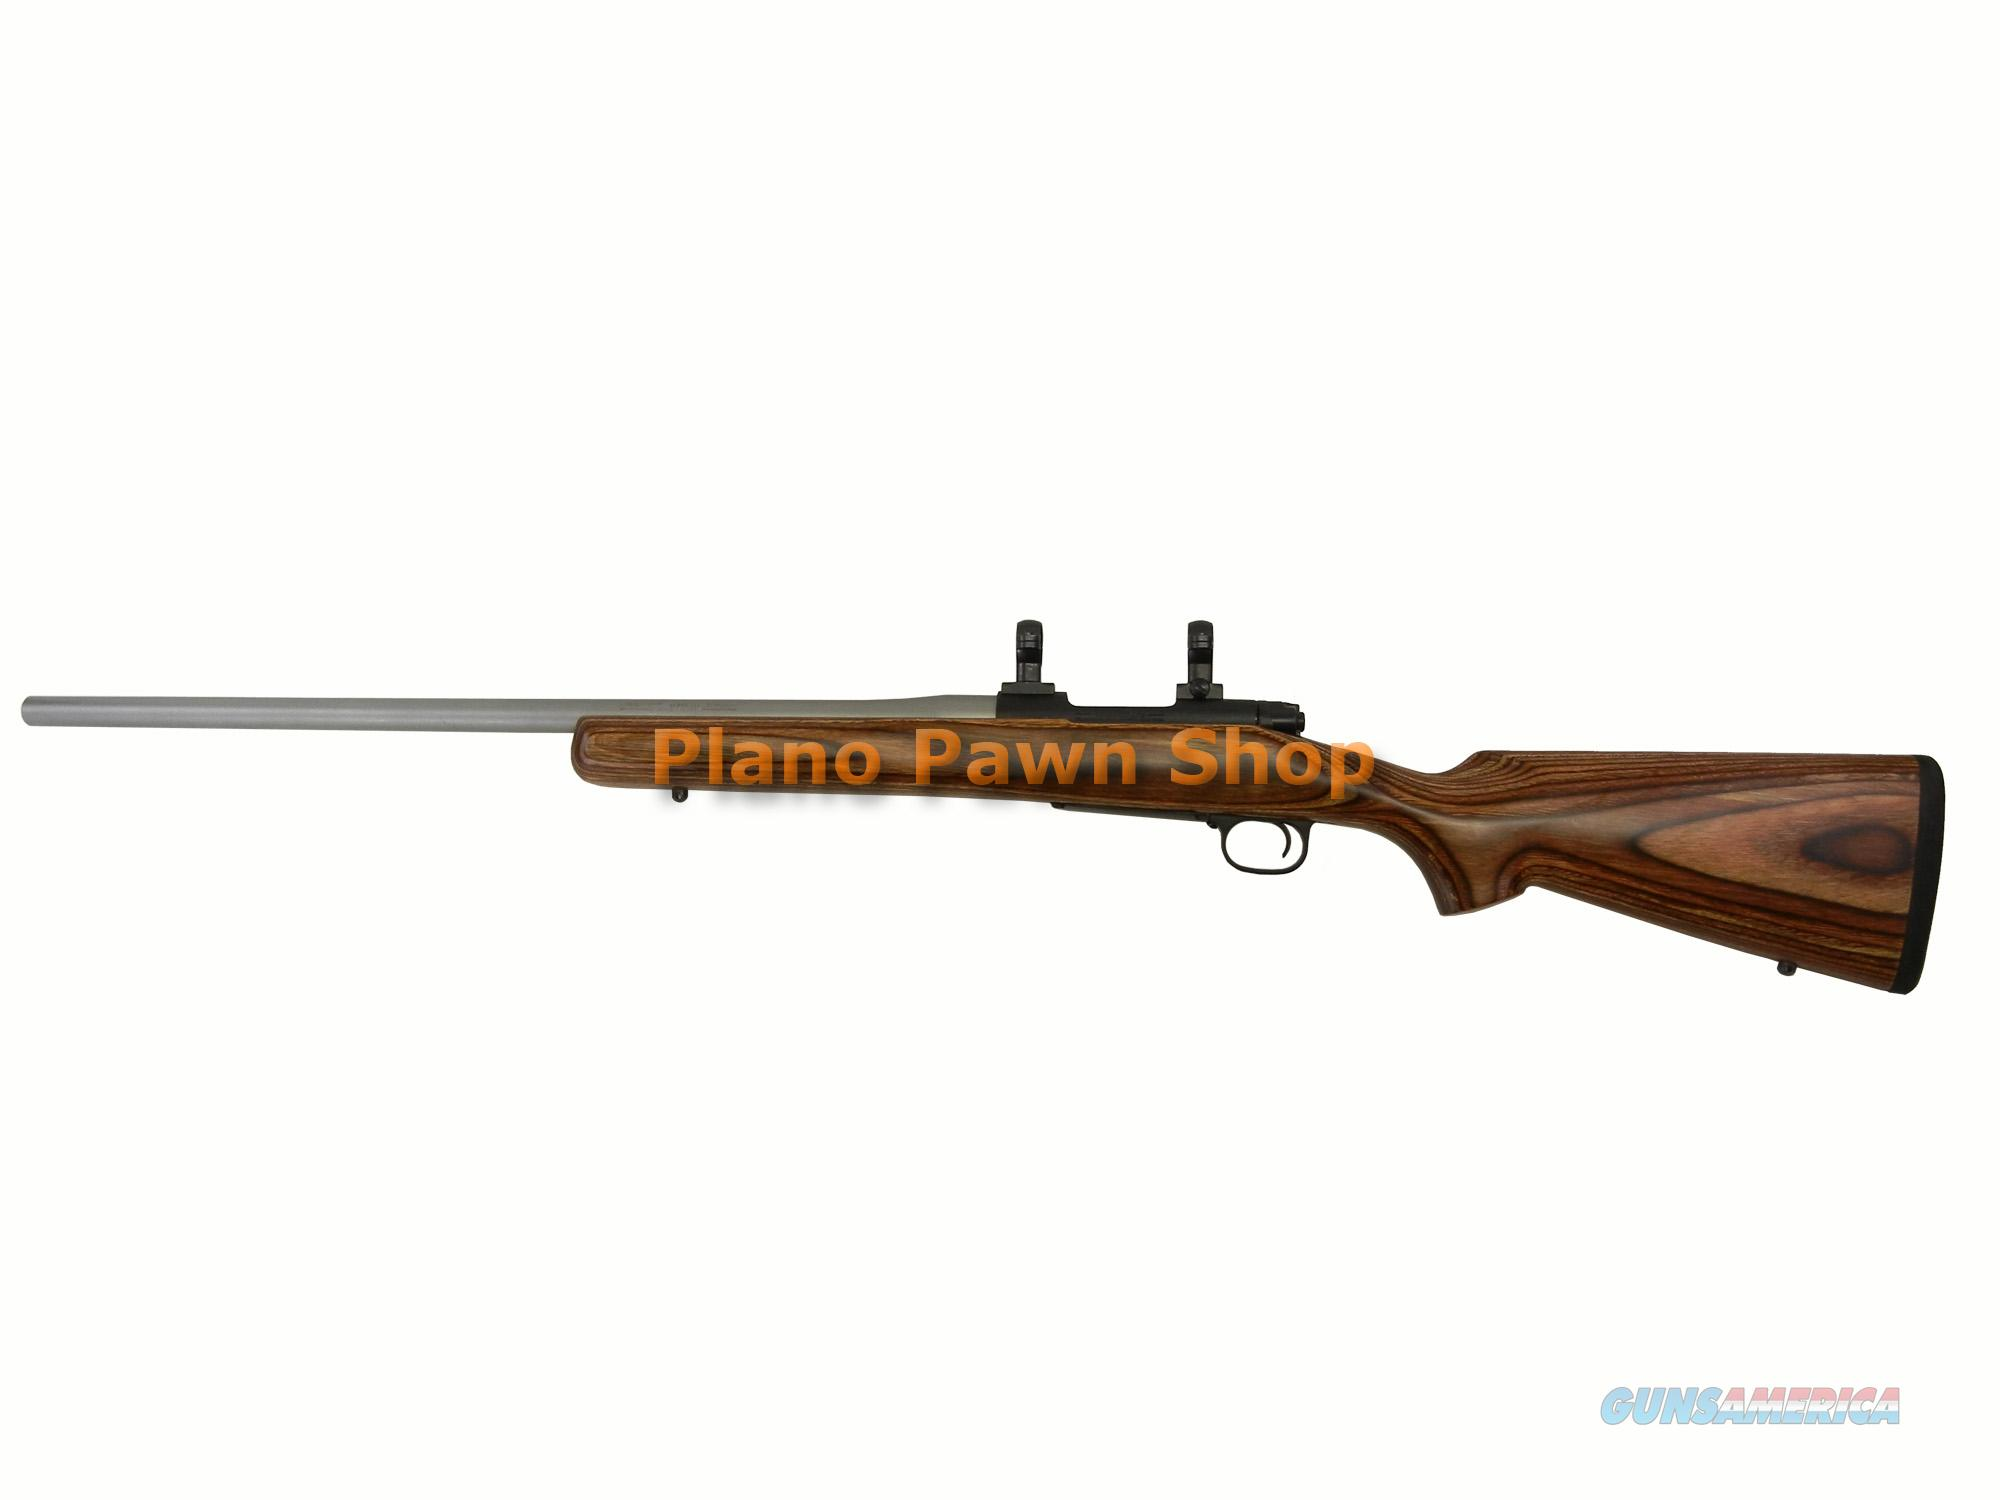 Winchester Model 70 .25 WSSM with Heavy Stainless Steel Barrel  Guns > Rifles > Winchester Rifles - Modern Bolt/Auto/Single > Model 70 > Post-64